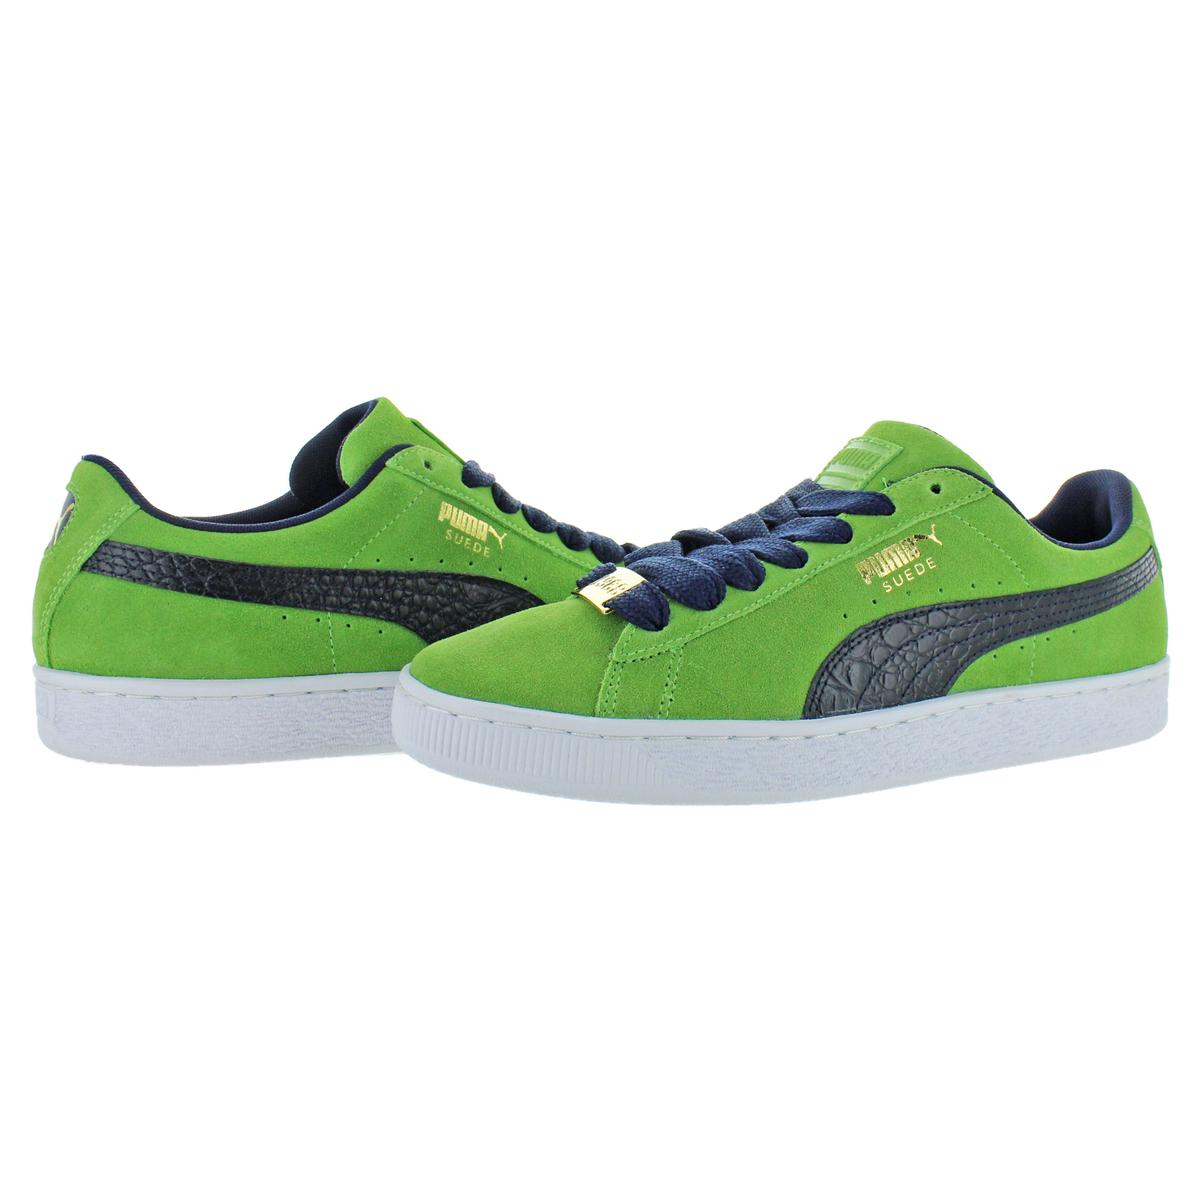 Puma-Suede-Classic-Men-039-s-Fashion-Sneakers-Shoes thumbnail 10